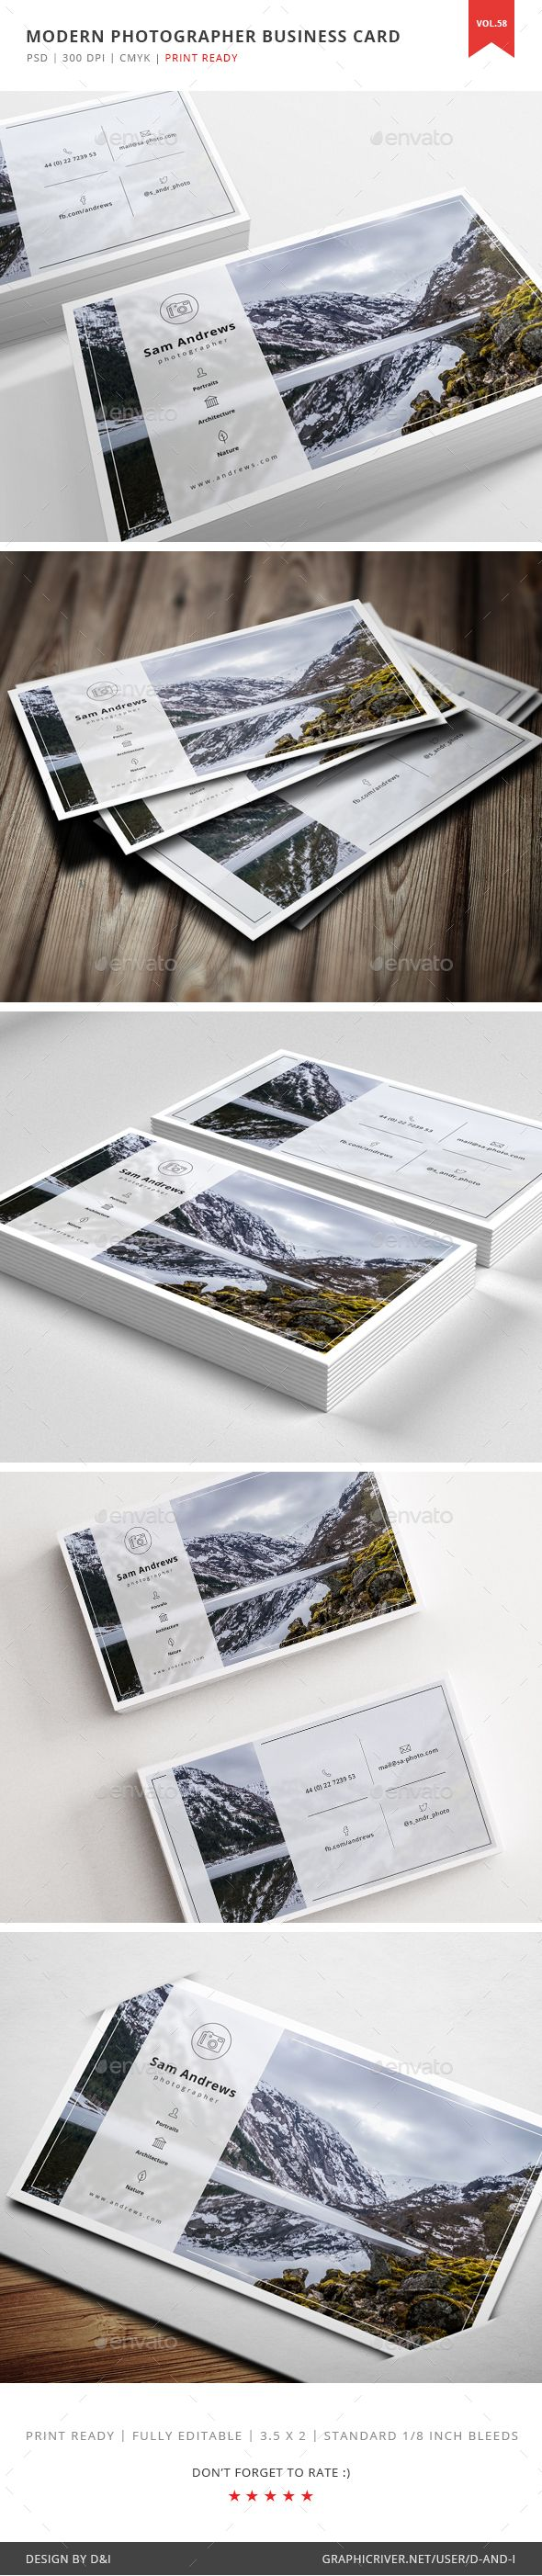 Modern Photographer Business Card  Vol. 58 — Photoshop PSD #creative agency #design studio • Available here → https://graphicriver.net/item/modern-photographer-business-card-vol-58/16831405?ref=pxcr